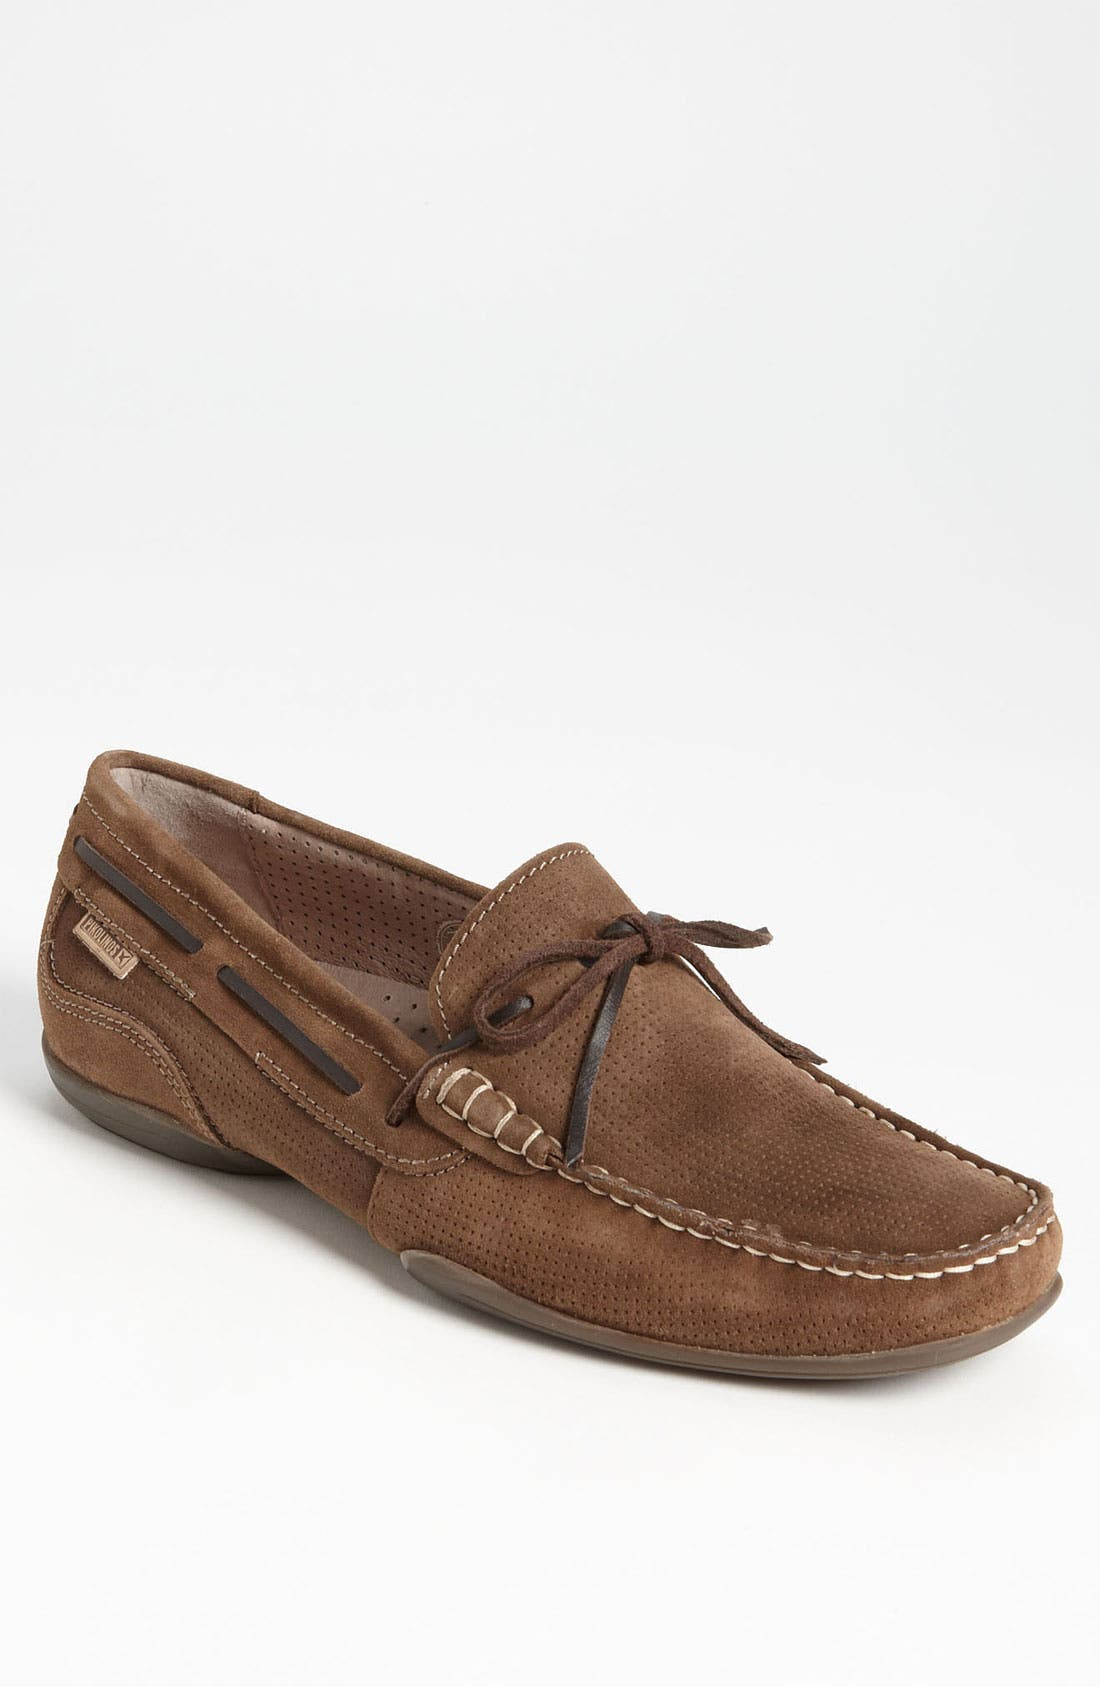 Alternate Image 1 Selected - PIKOLINOS 'Puerto Rico 3' Suede Loafer